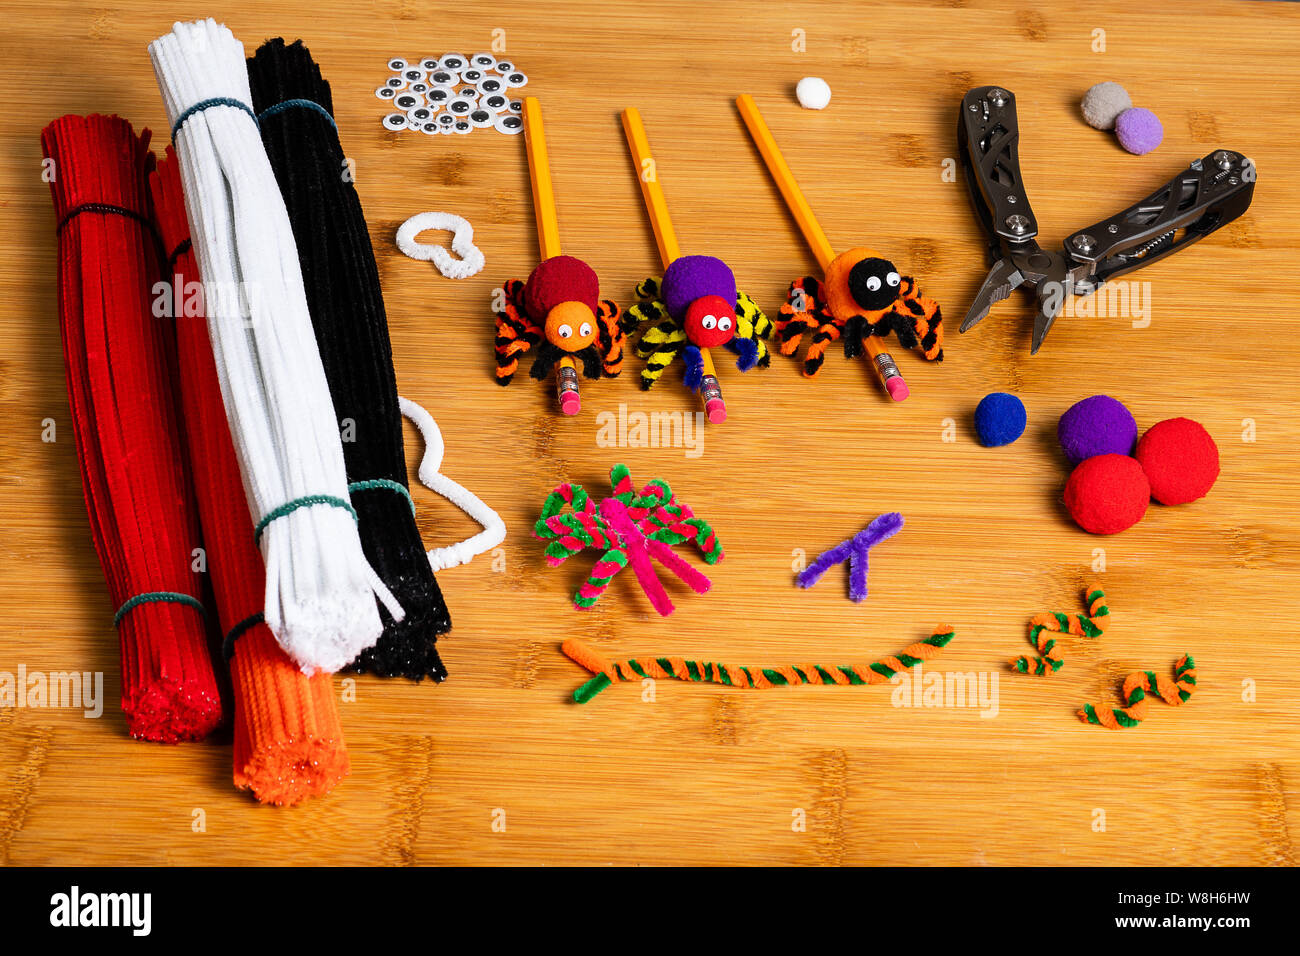 Fun Halloween Crafts Spiders Made Of Pom Poms And Pipe